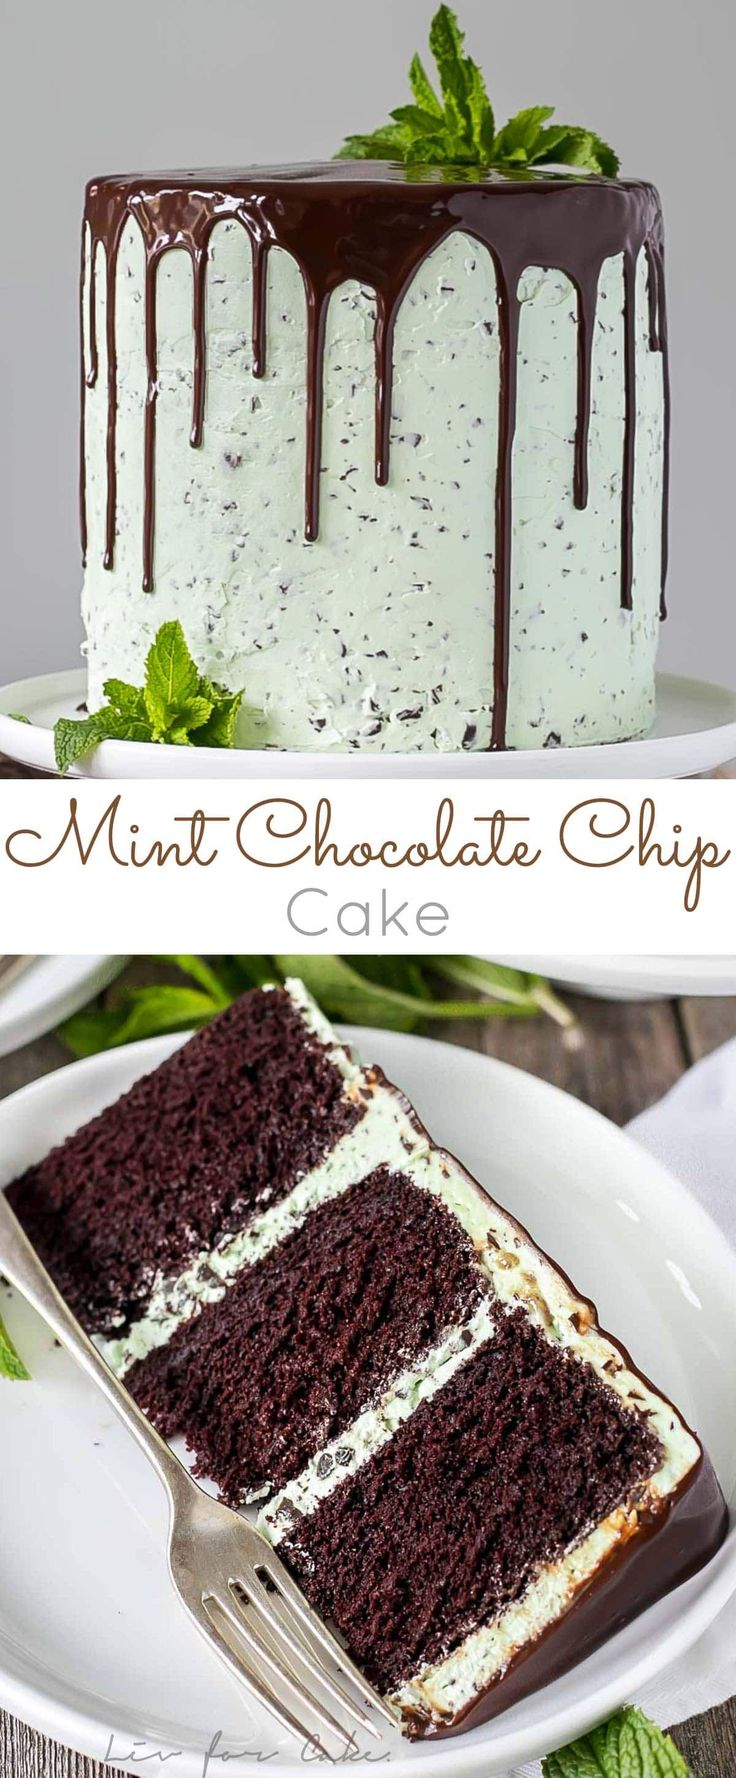 This Mint Chocolate Chip Cake is a mint lover's dream! Layers of decadent chocolate cake topped with a silky mint chip buttercream. | livforcake.com via @livforcake